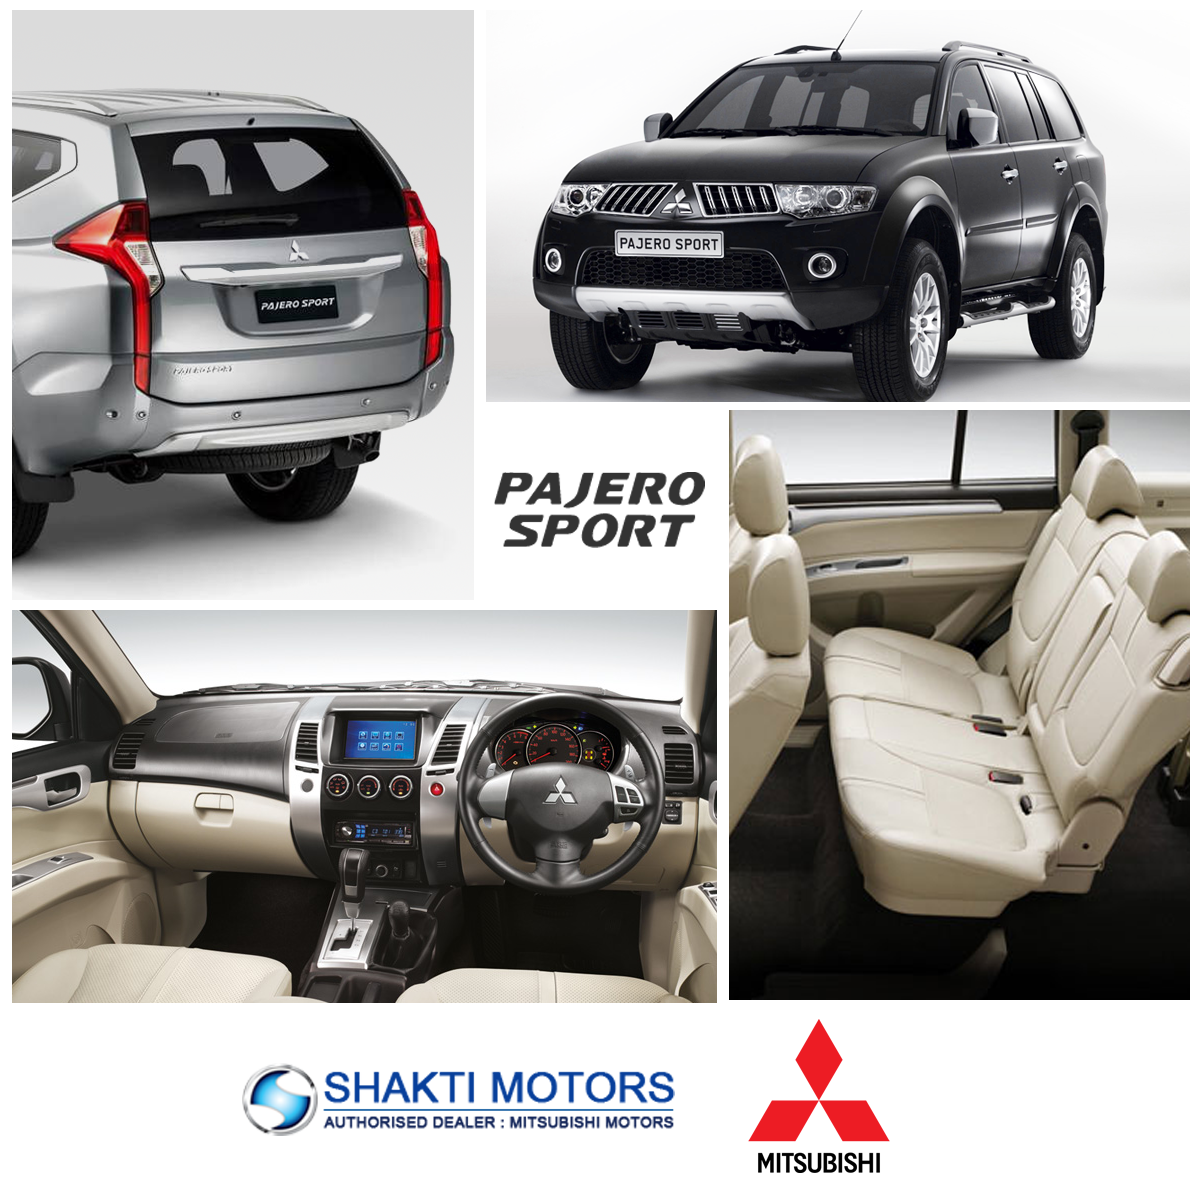 The new mitsubishi pajero sport shakti motors features and performance that you will love it check features infographics kingofallroads pinterest